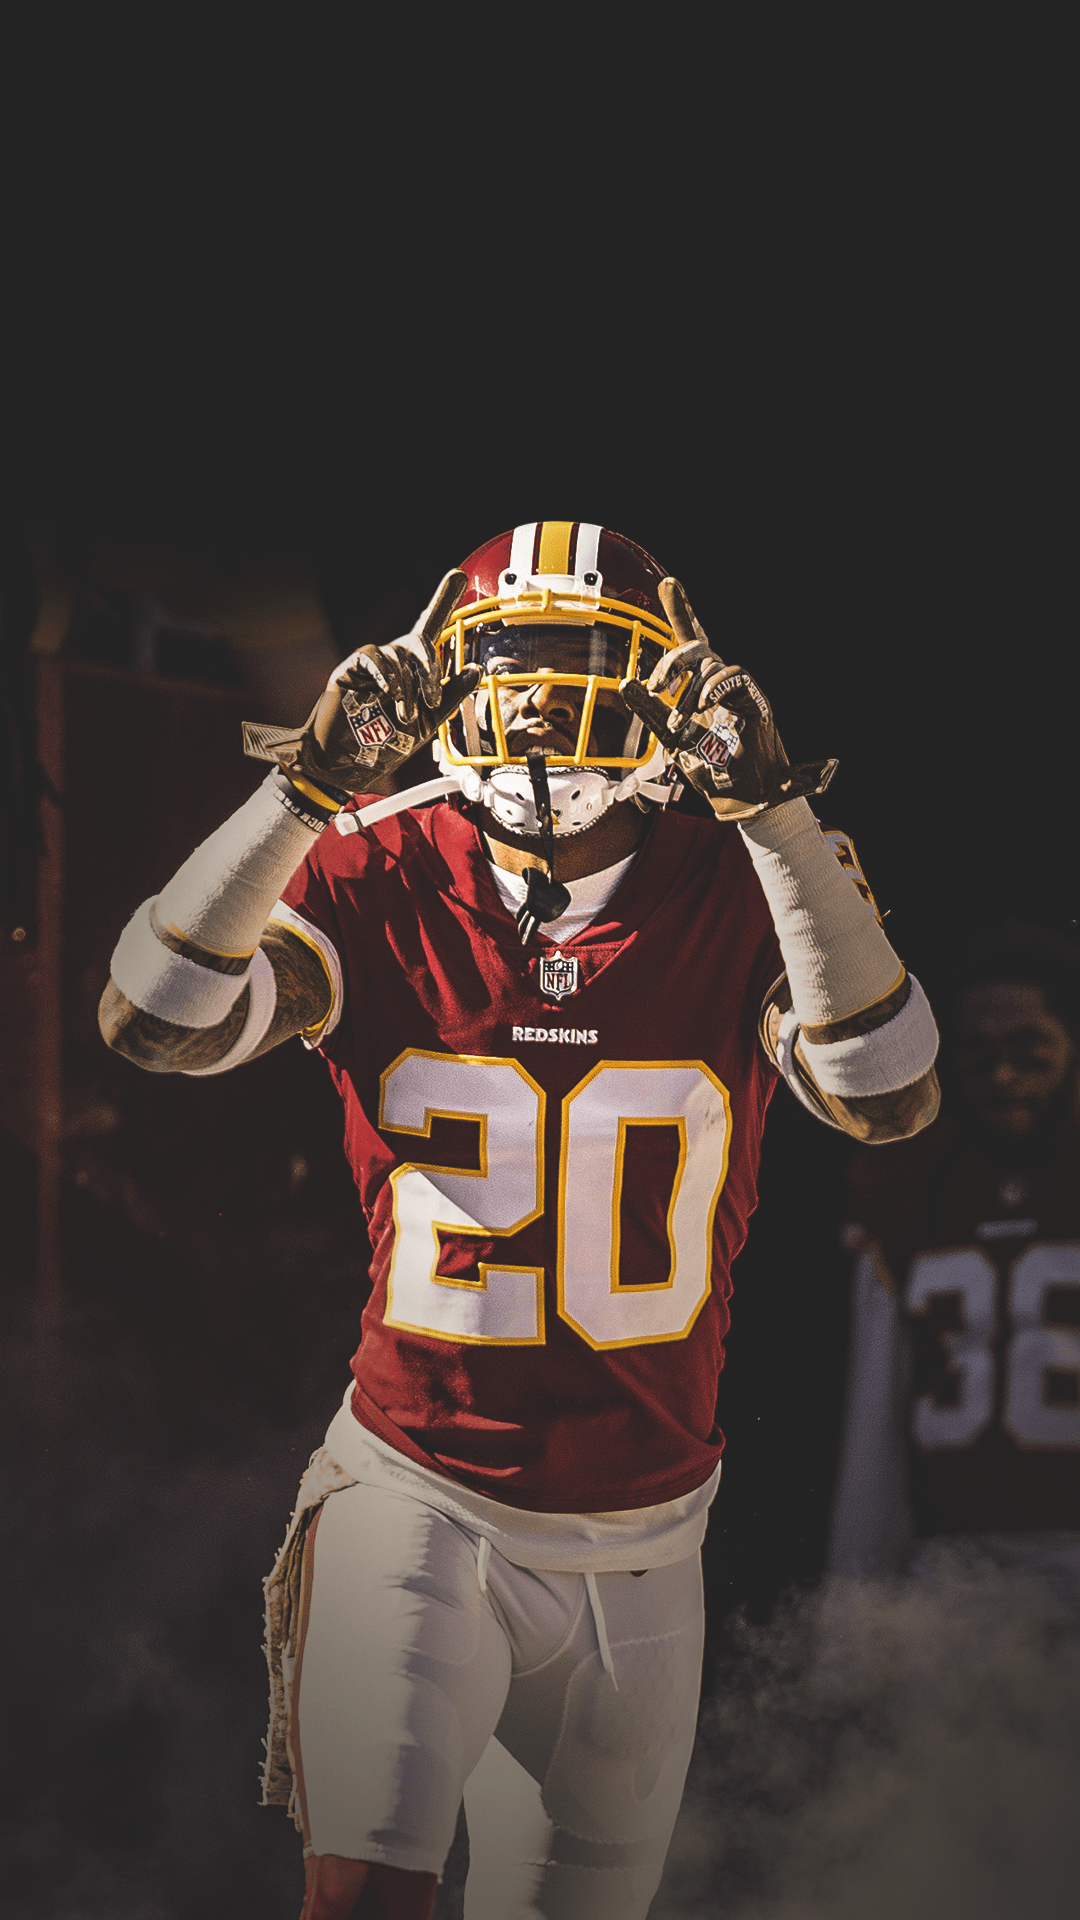 Adrian Peterson Wallpaper Iphone Redskins Fan Zone Washington Redskins Redskins Com